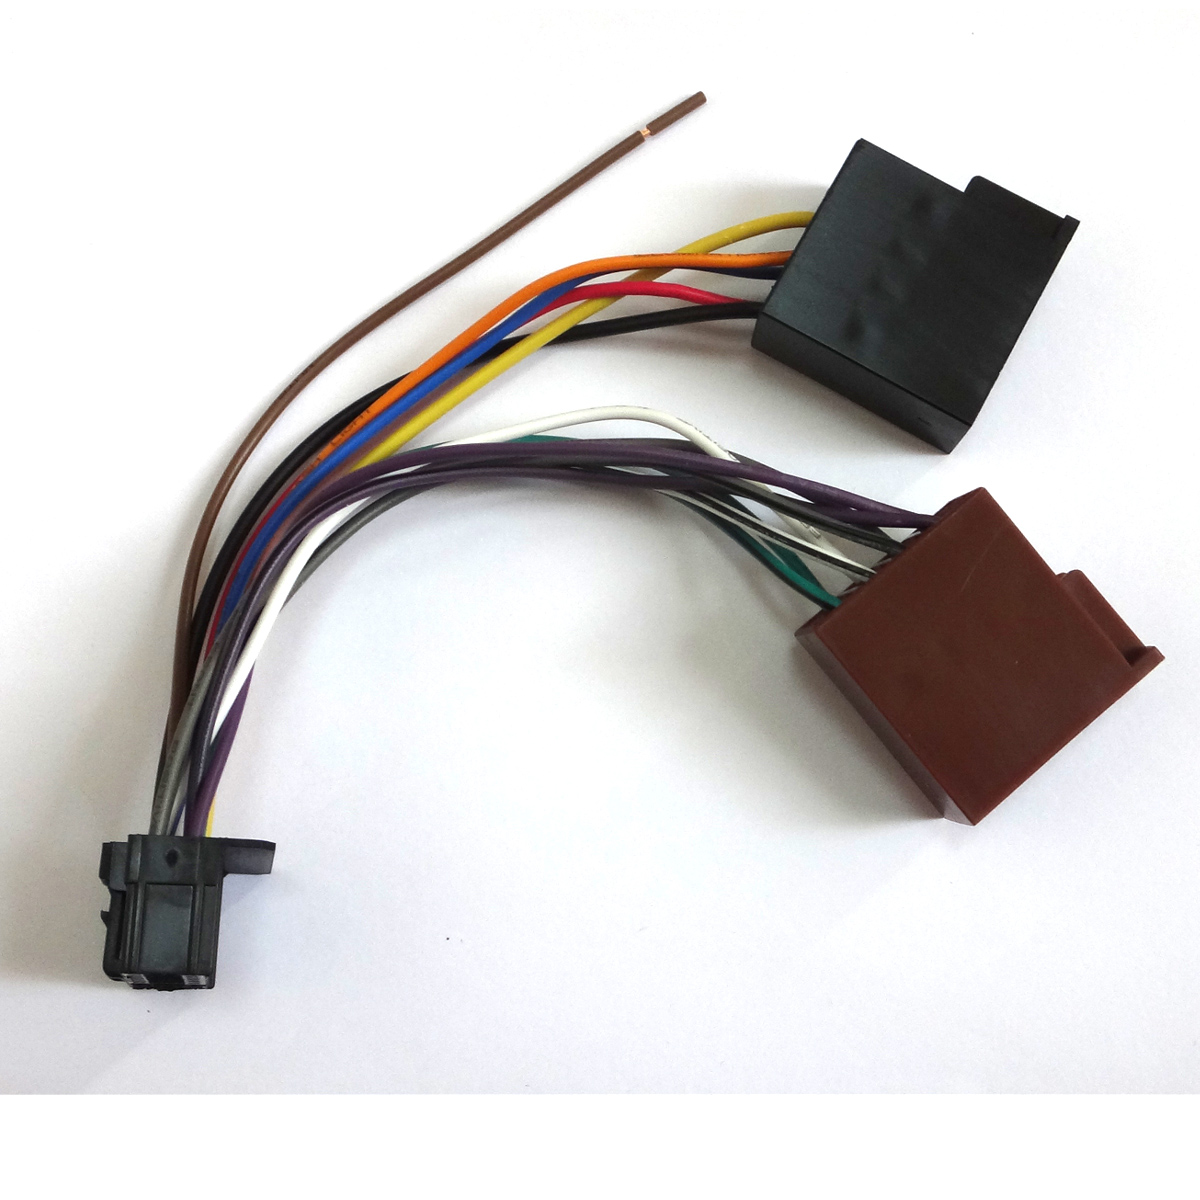 pioneer wiring harness for 5800 pioneer wiring harness for cd #1